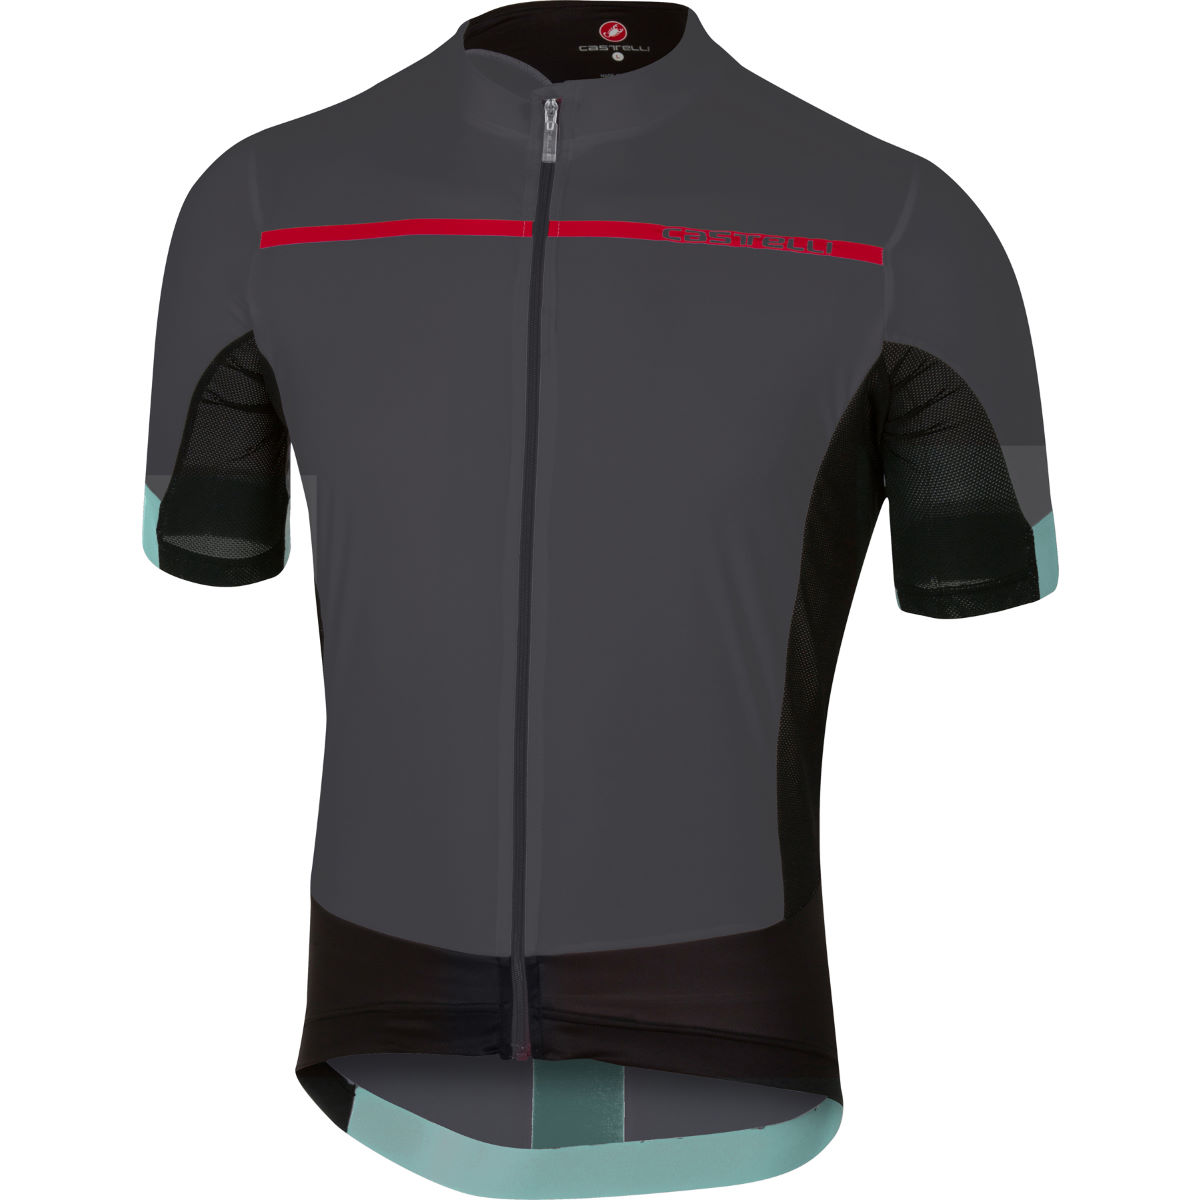 Maillot Castelli Forza Pro - XL Anthracite/Red